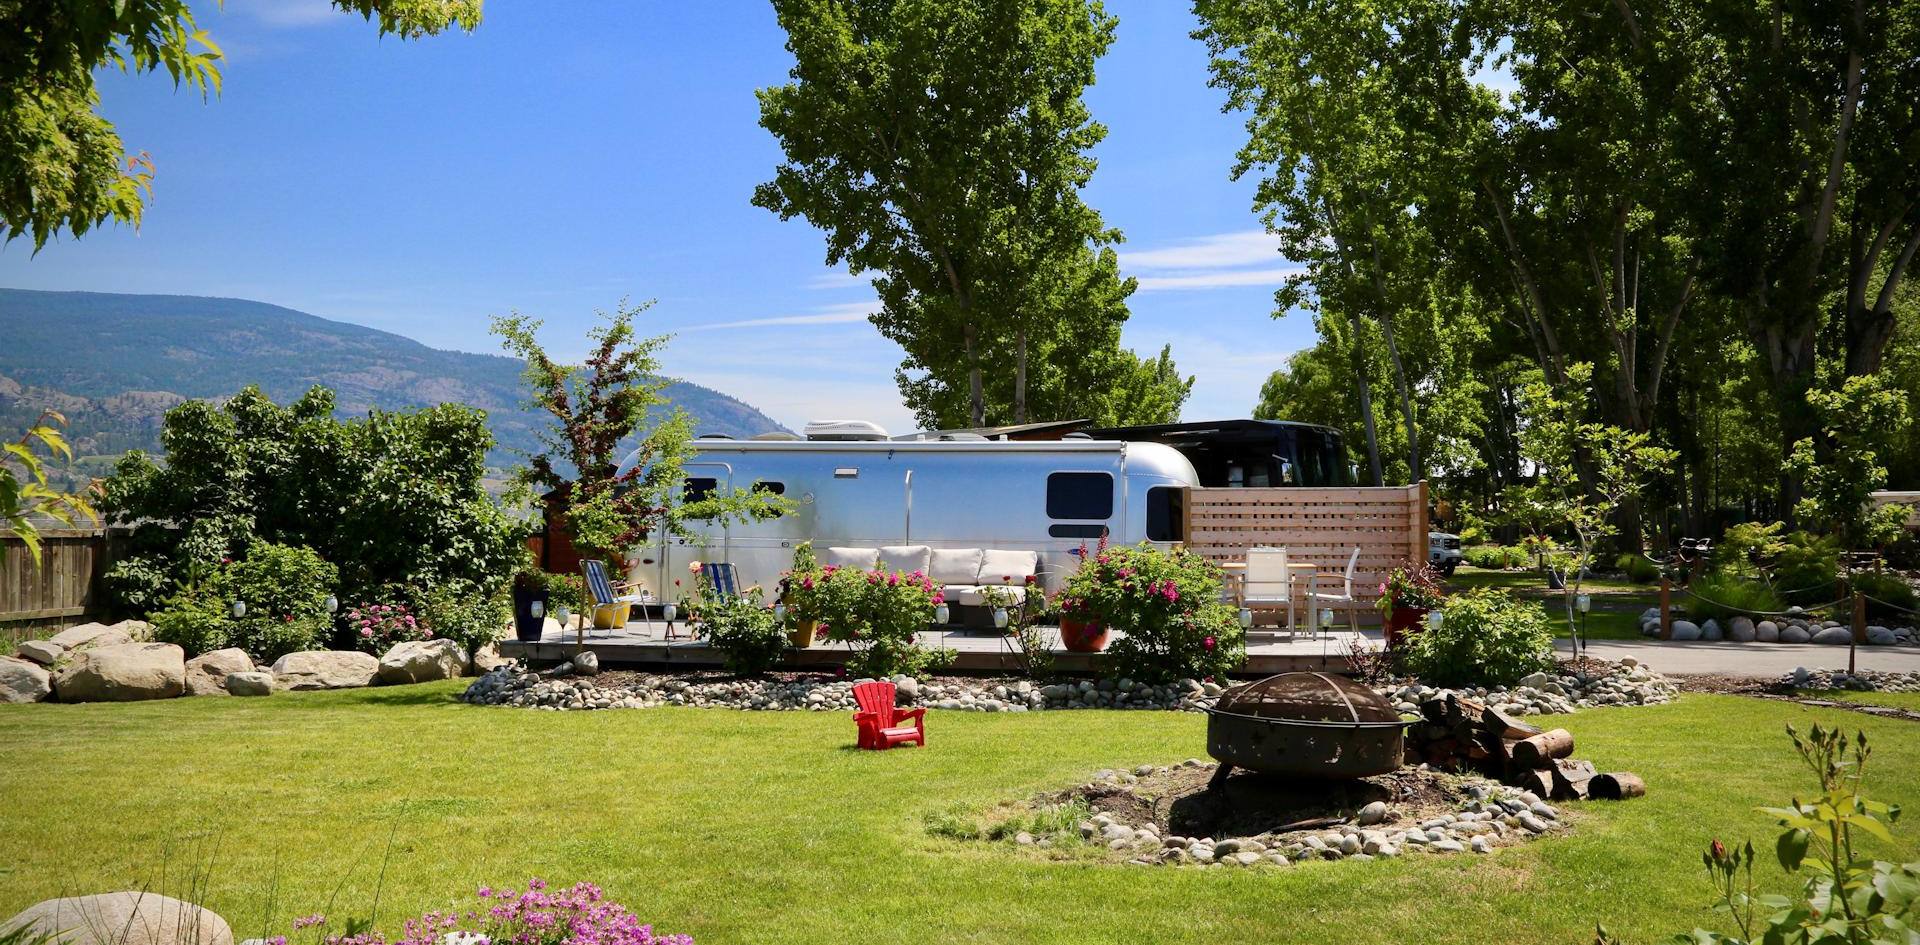 RV site, deck, gardens